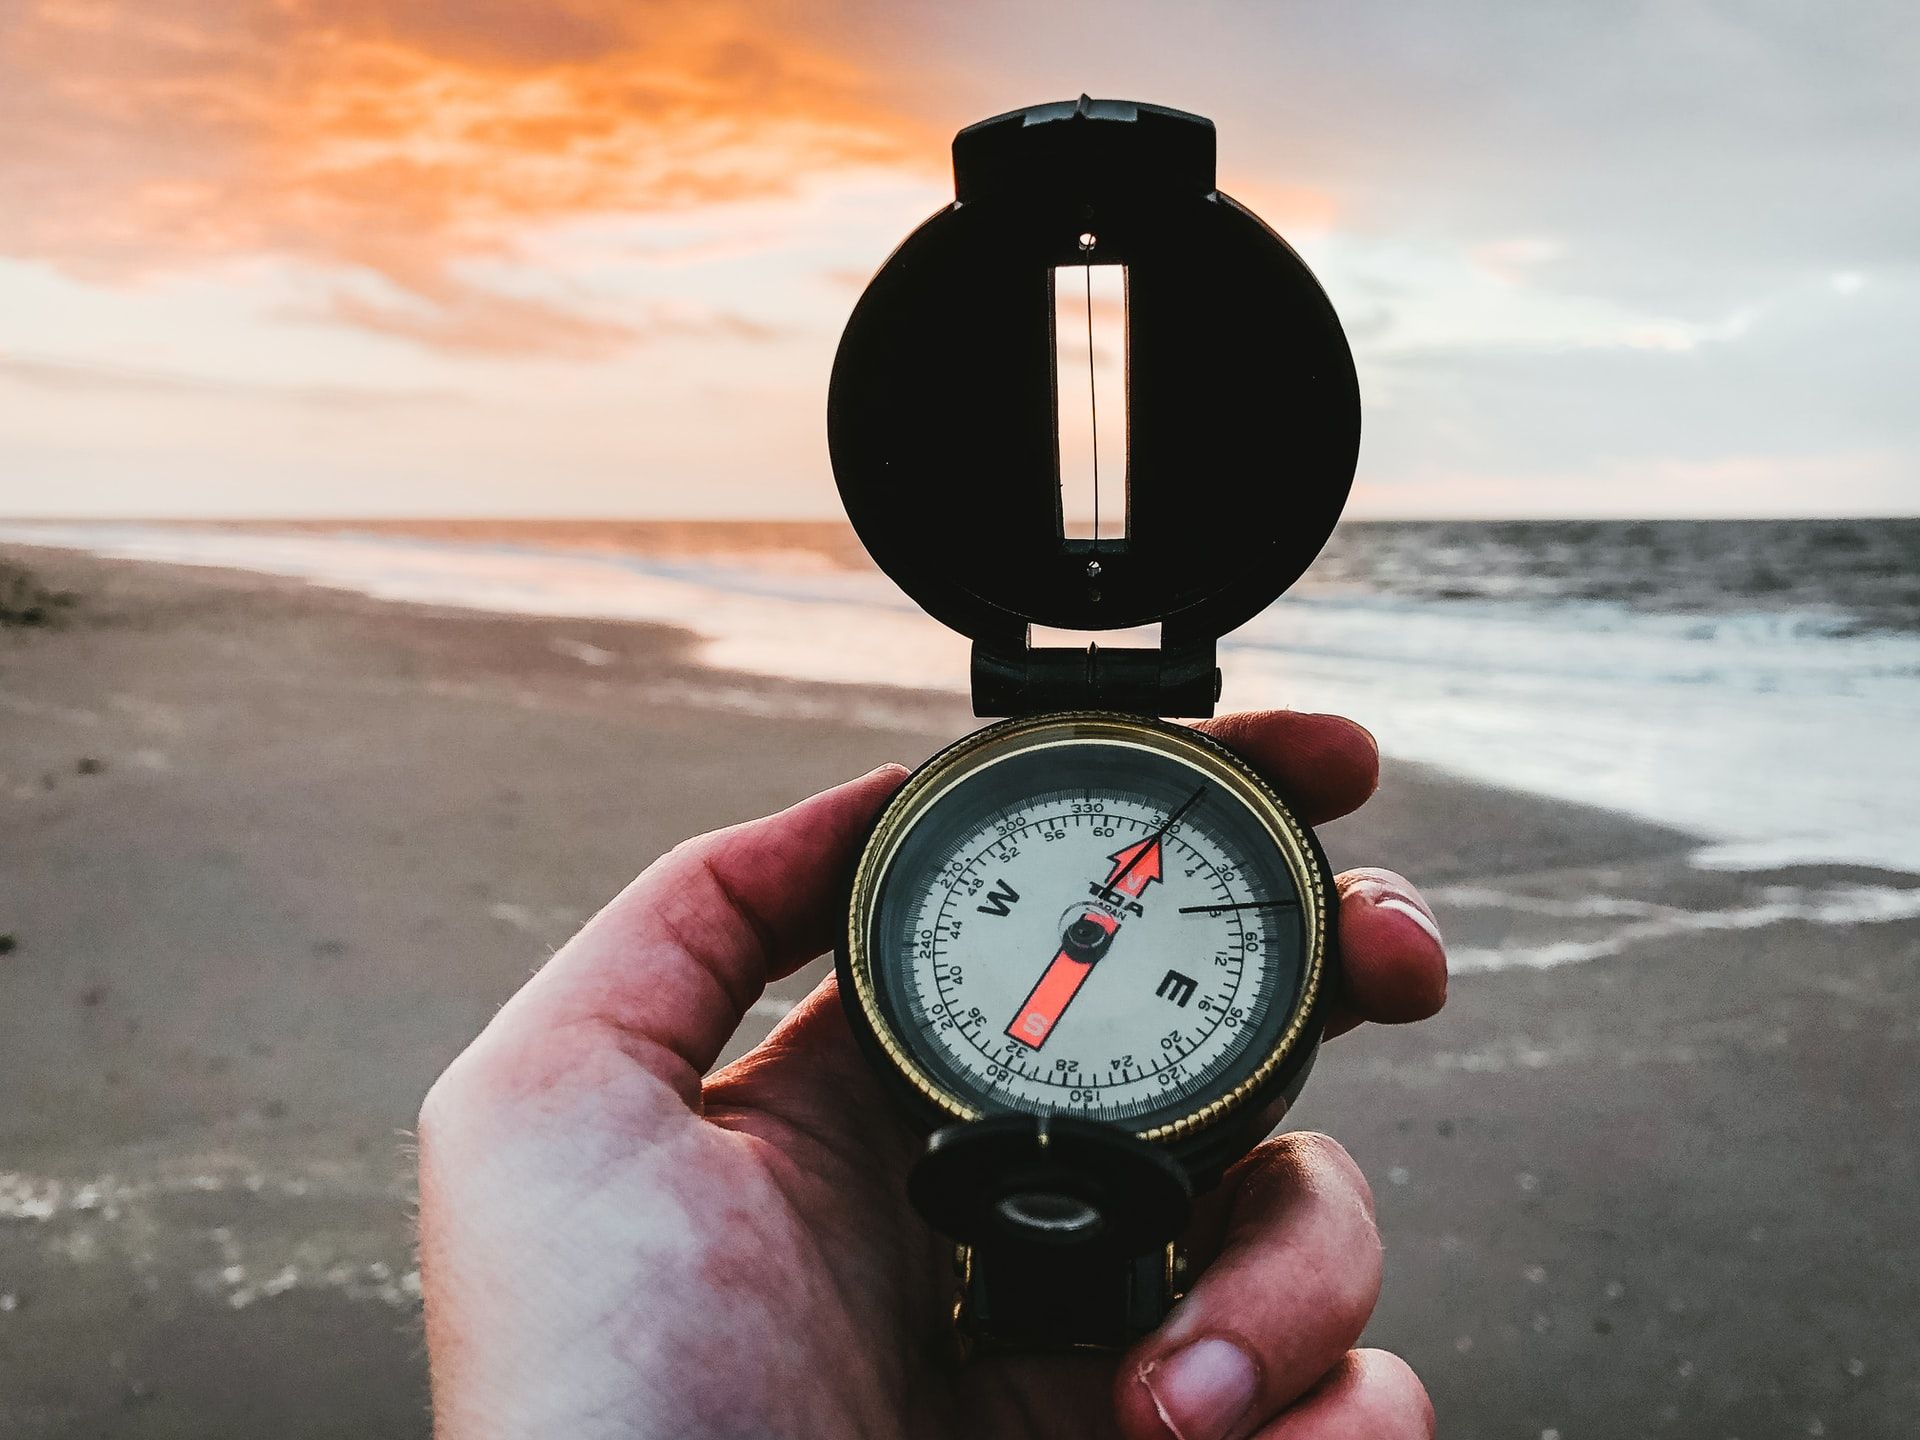 Person holding a compass at the beach